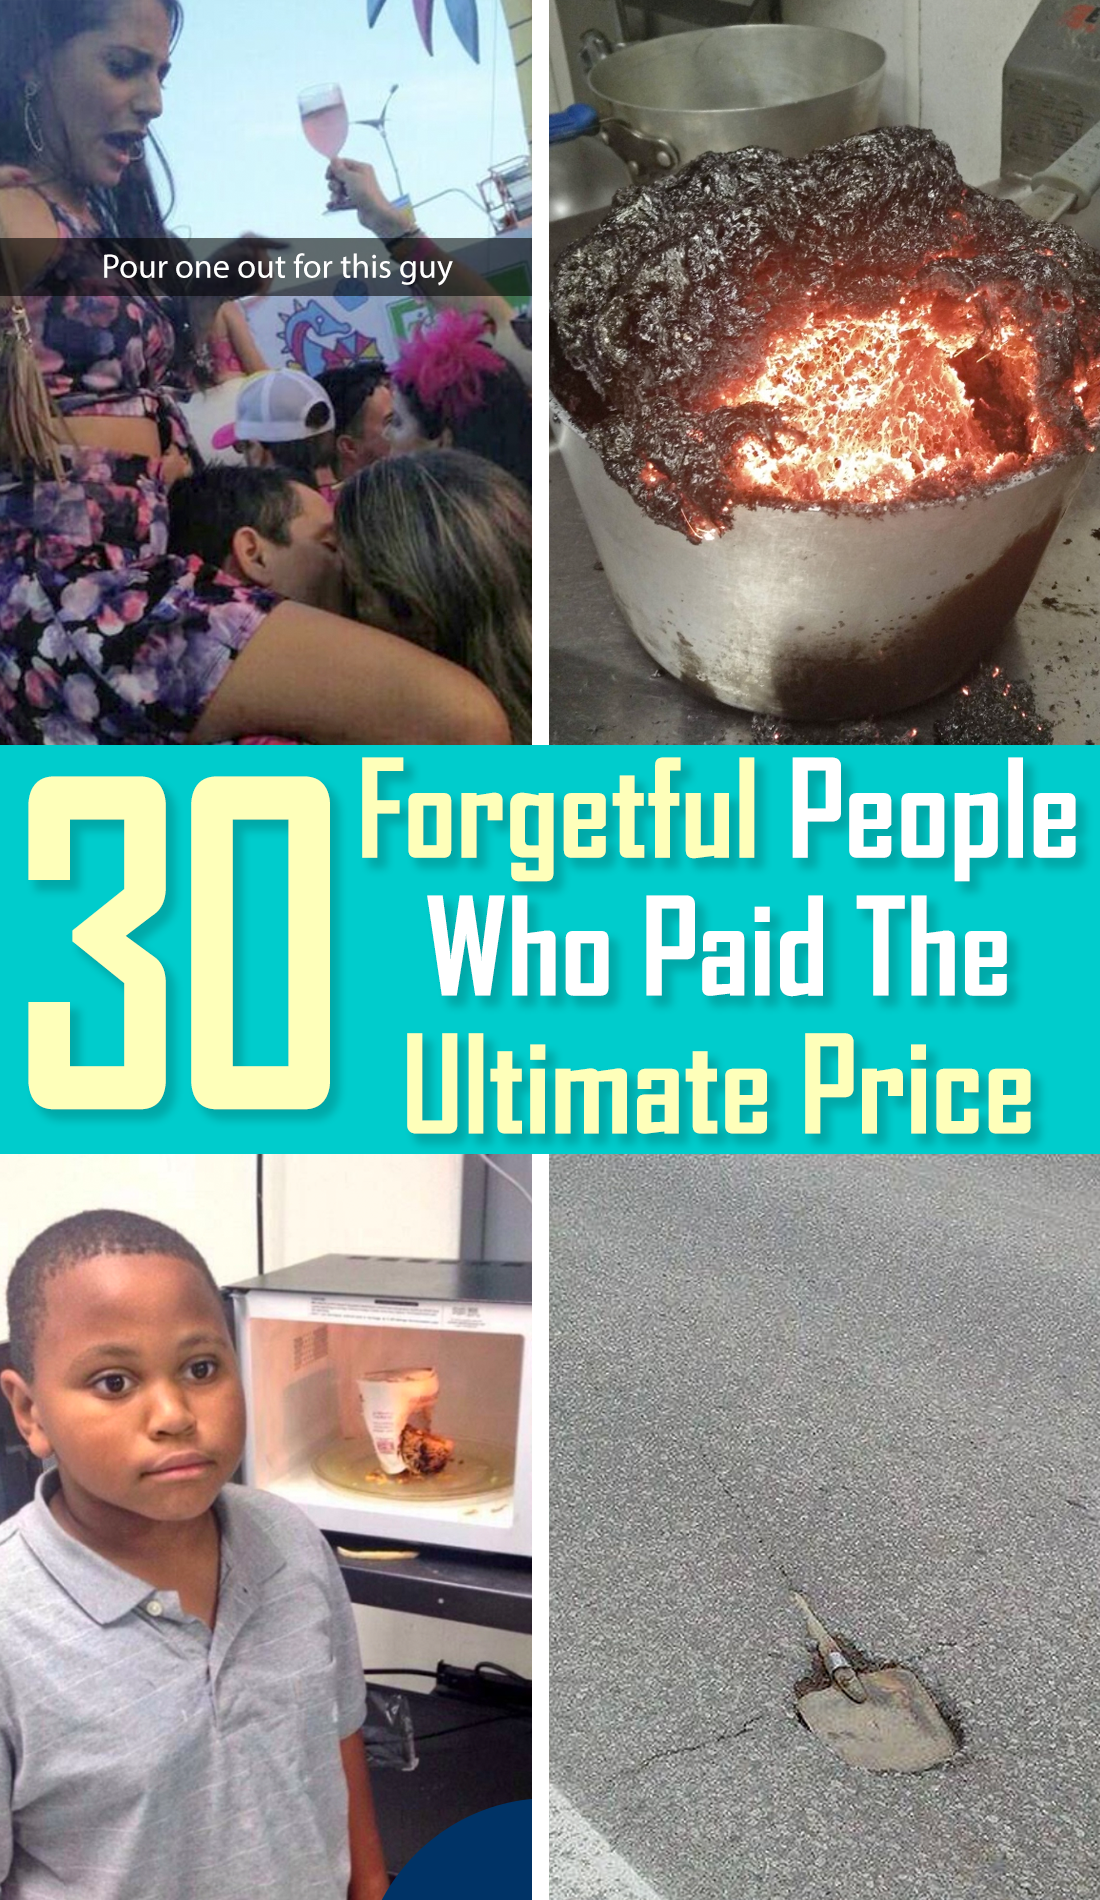 Forgetful People Who Paid The Ultimate Price